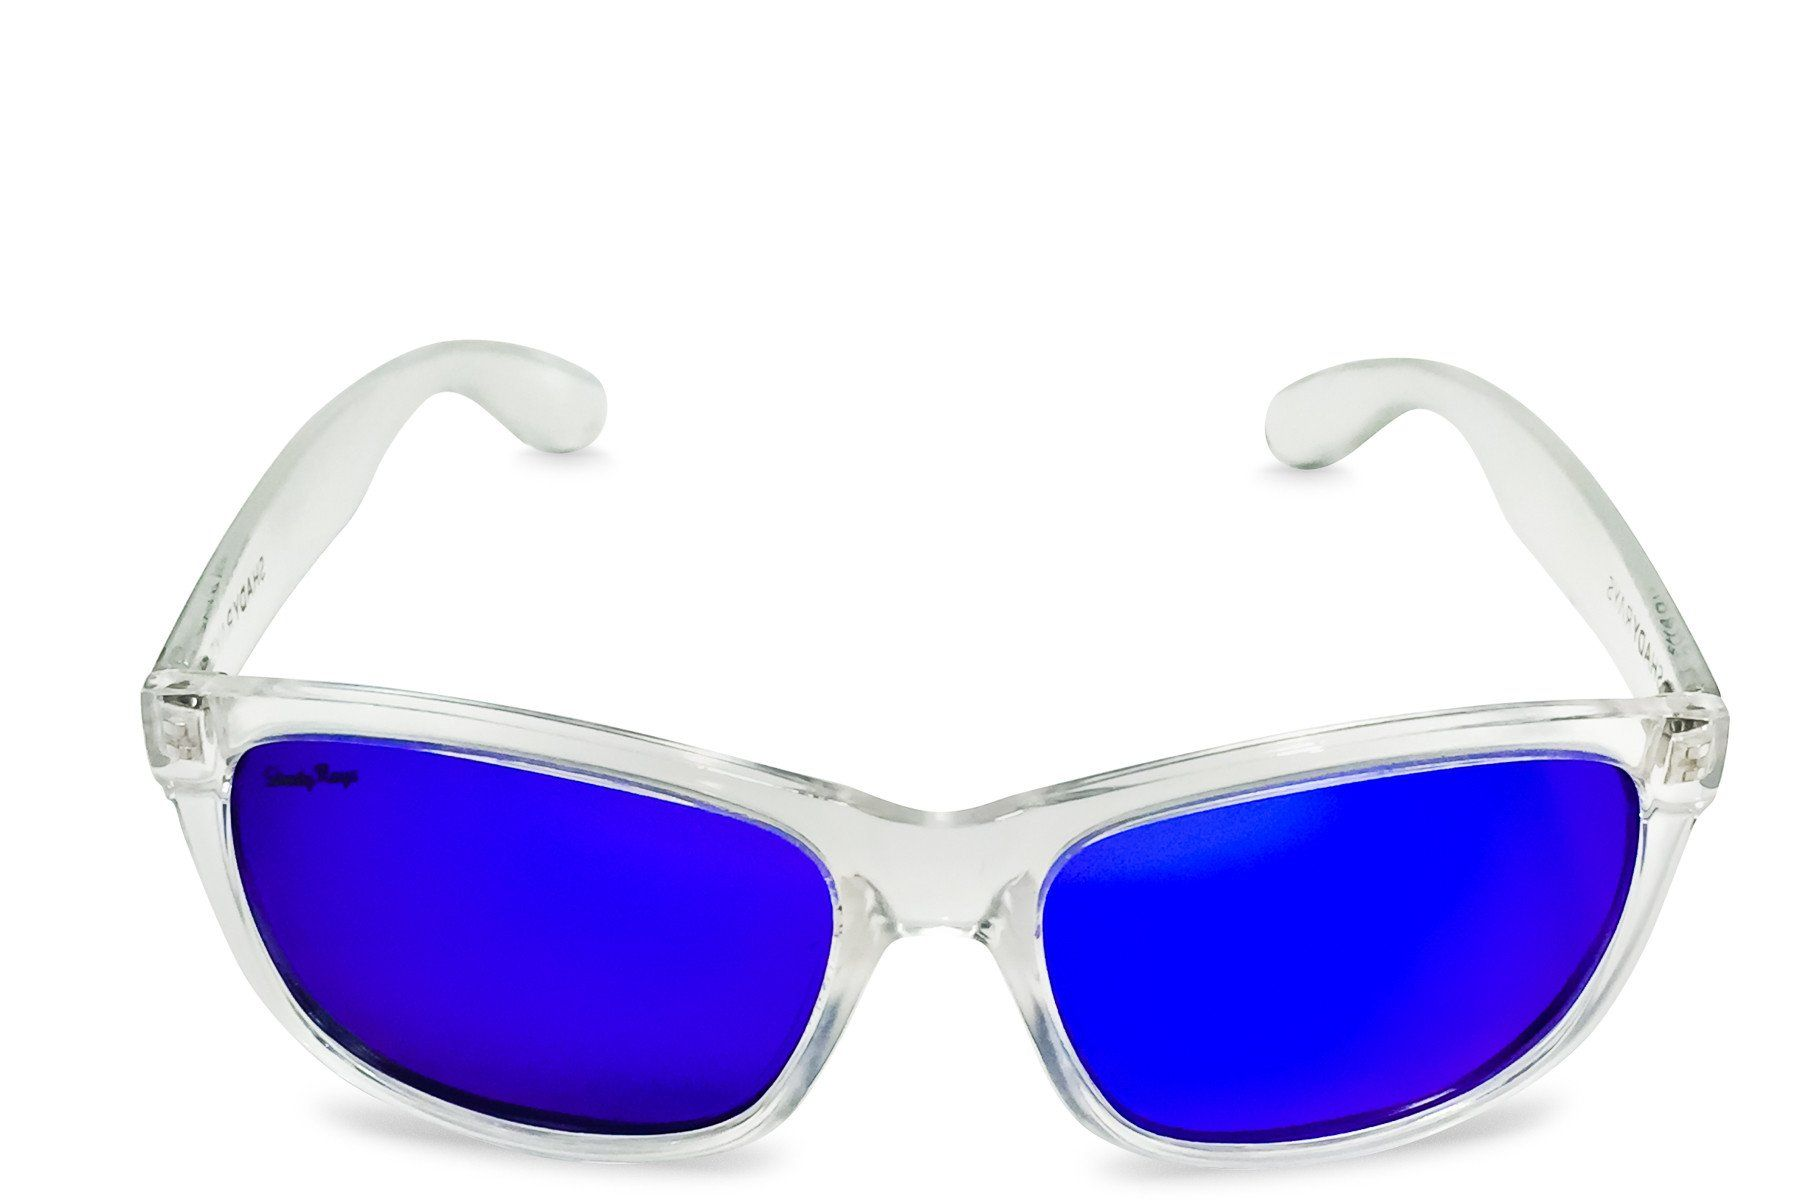 Signature Series - Royal Ice Polarized